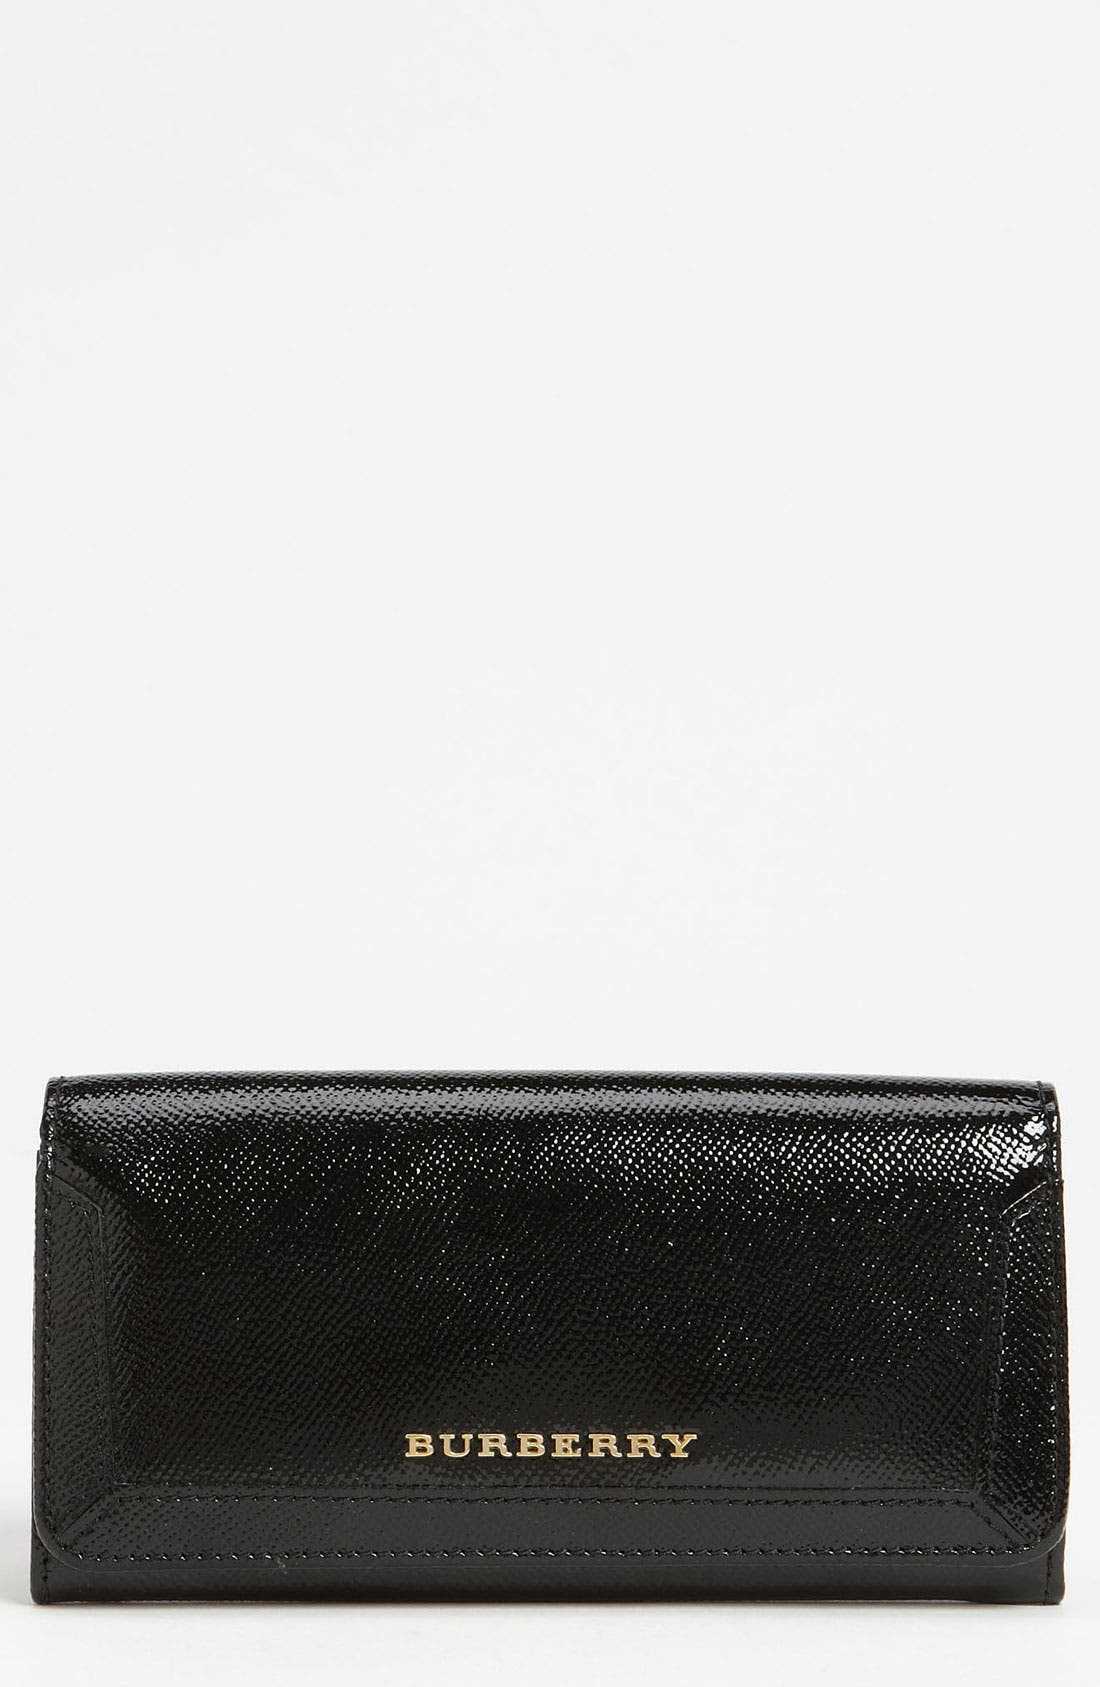 Patent Leather Wallet,                             Main thumbnail 1, color,                             001